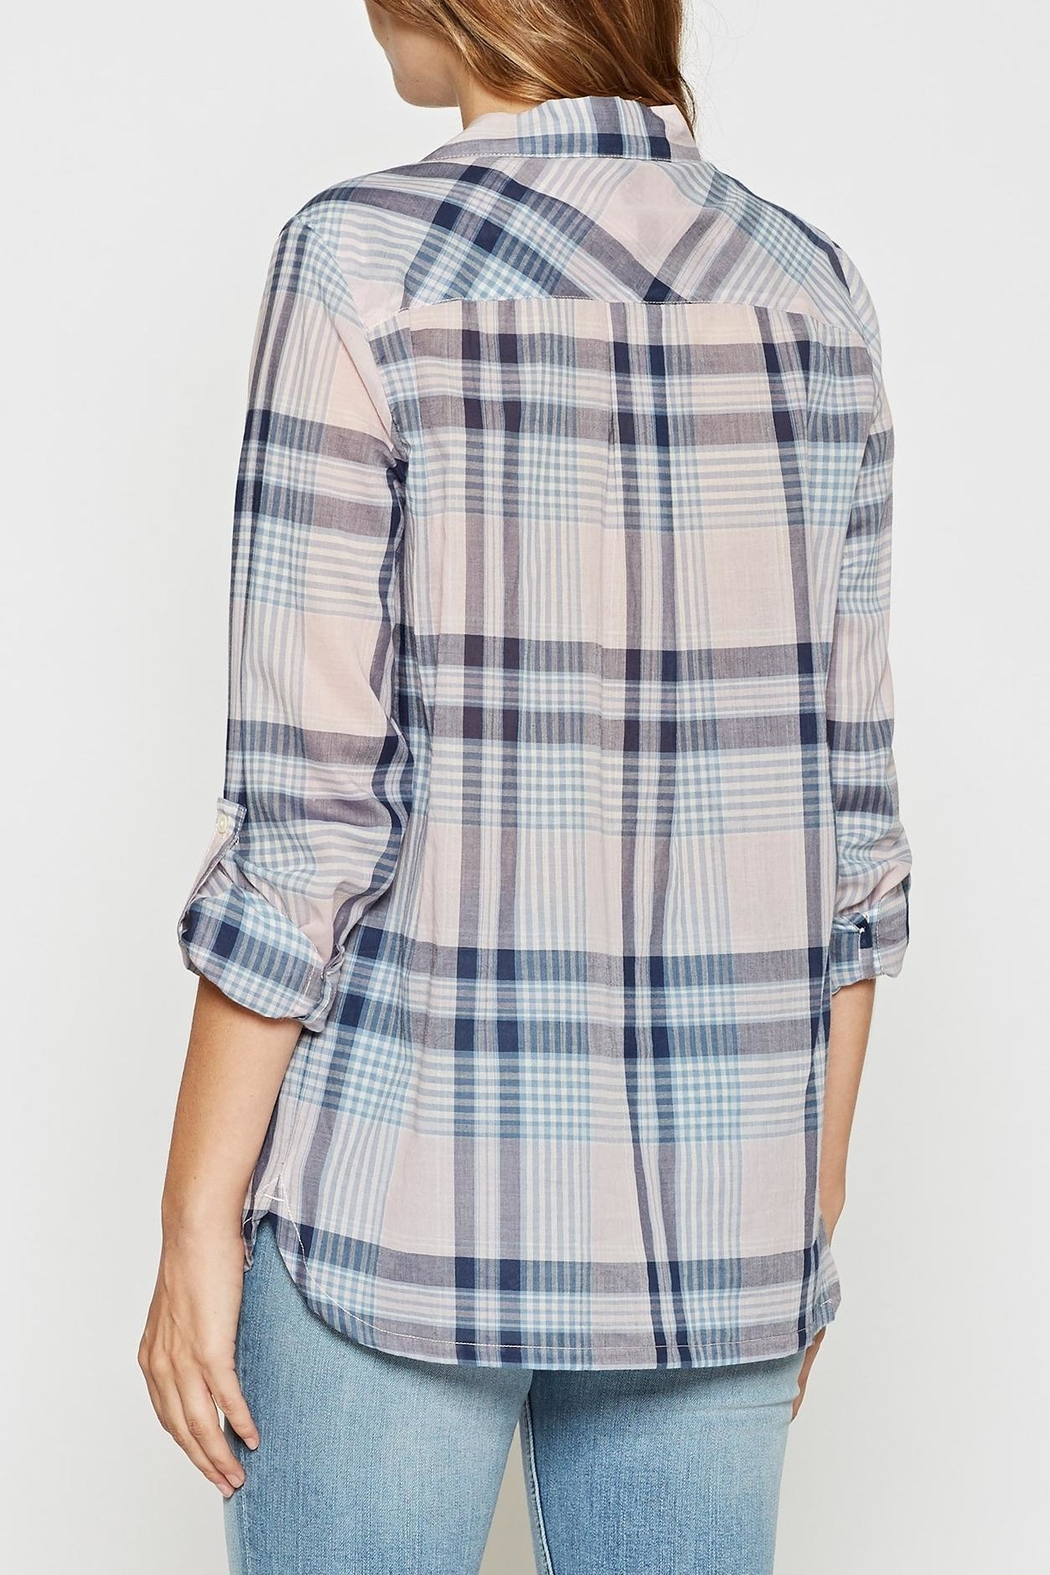 Joie Soft Lilya Plaid Top - Side Cropped Image